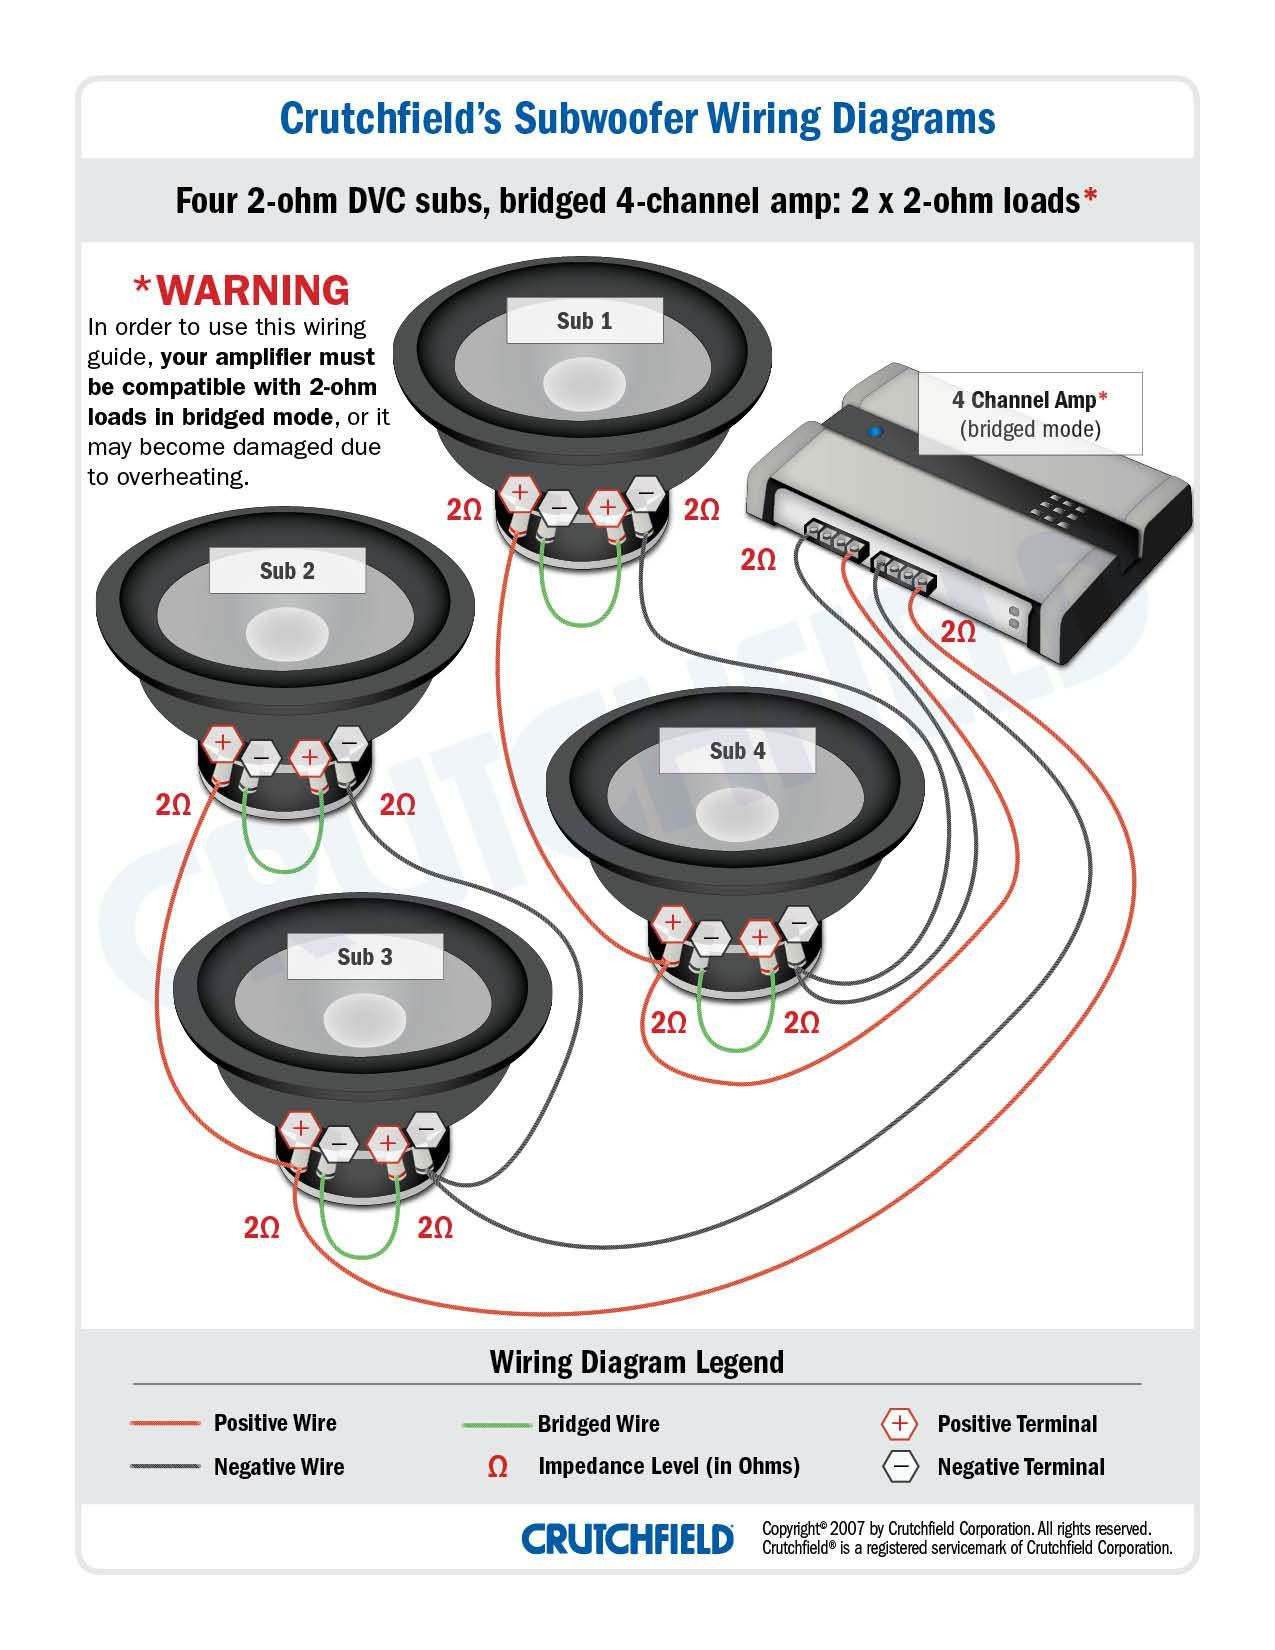 Punch Dual Voice Coil Wiring Diagram - Interior Fuse Box Location 19901995  Toyota 4runner 1994 | Bege Wiring Diagram | Punch Dual Voice Coil Wiring Diagram |  | Bege Wiring Diagram